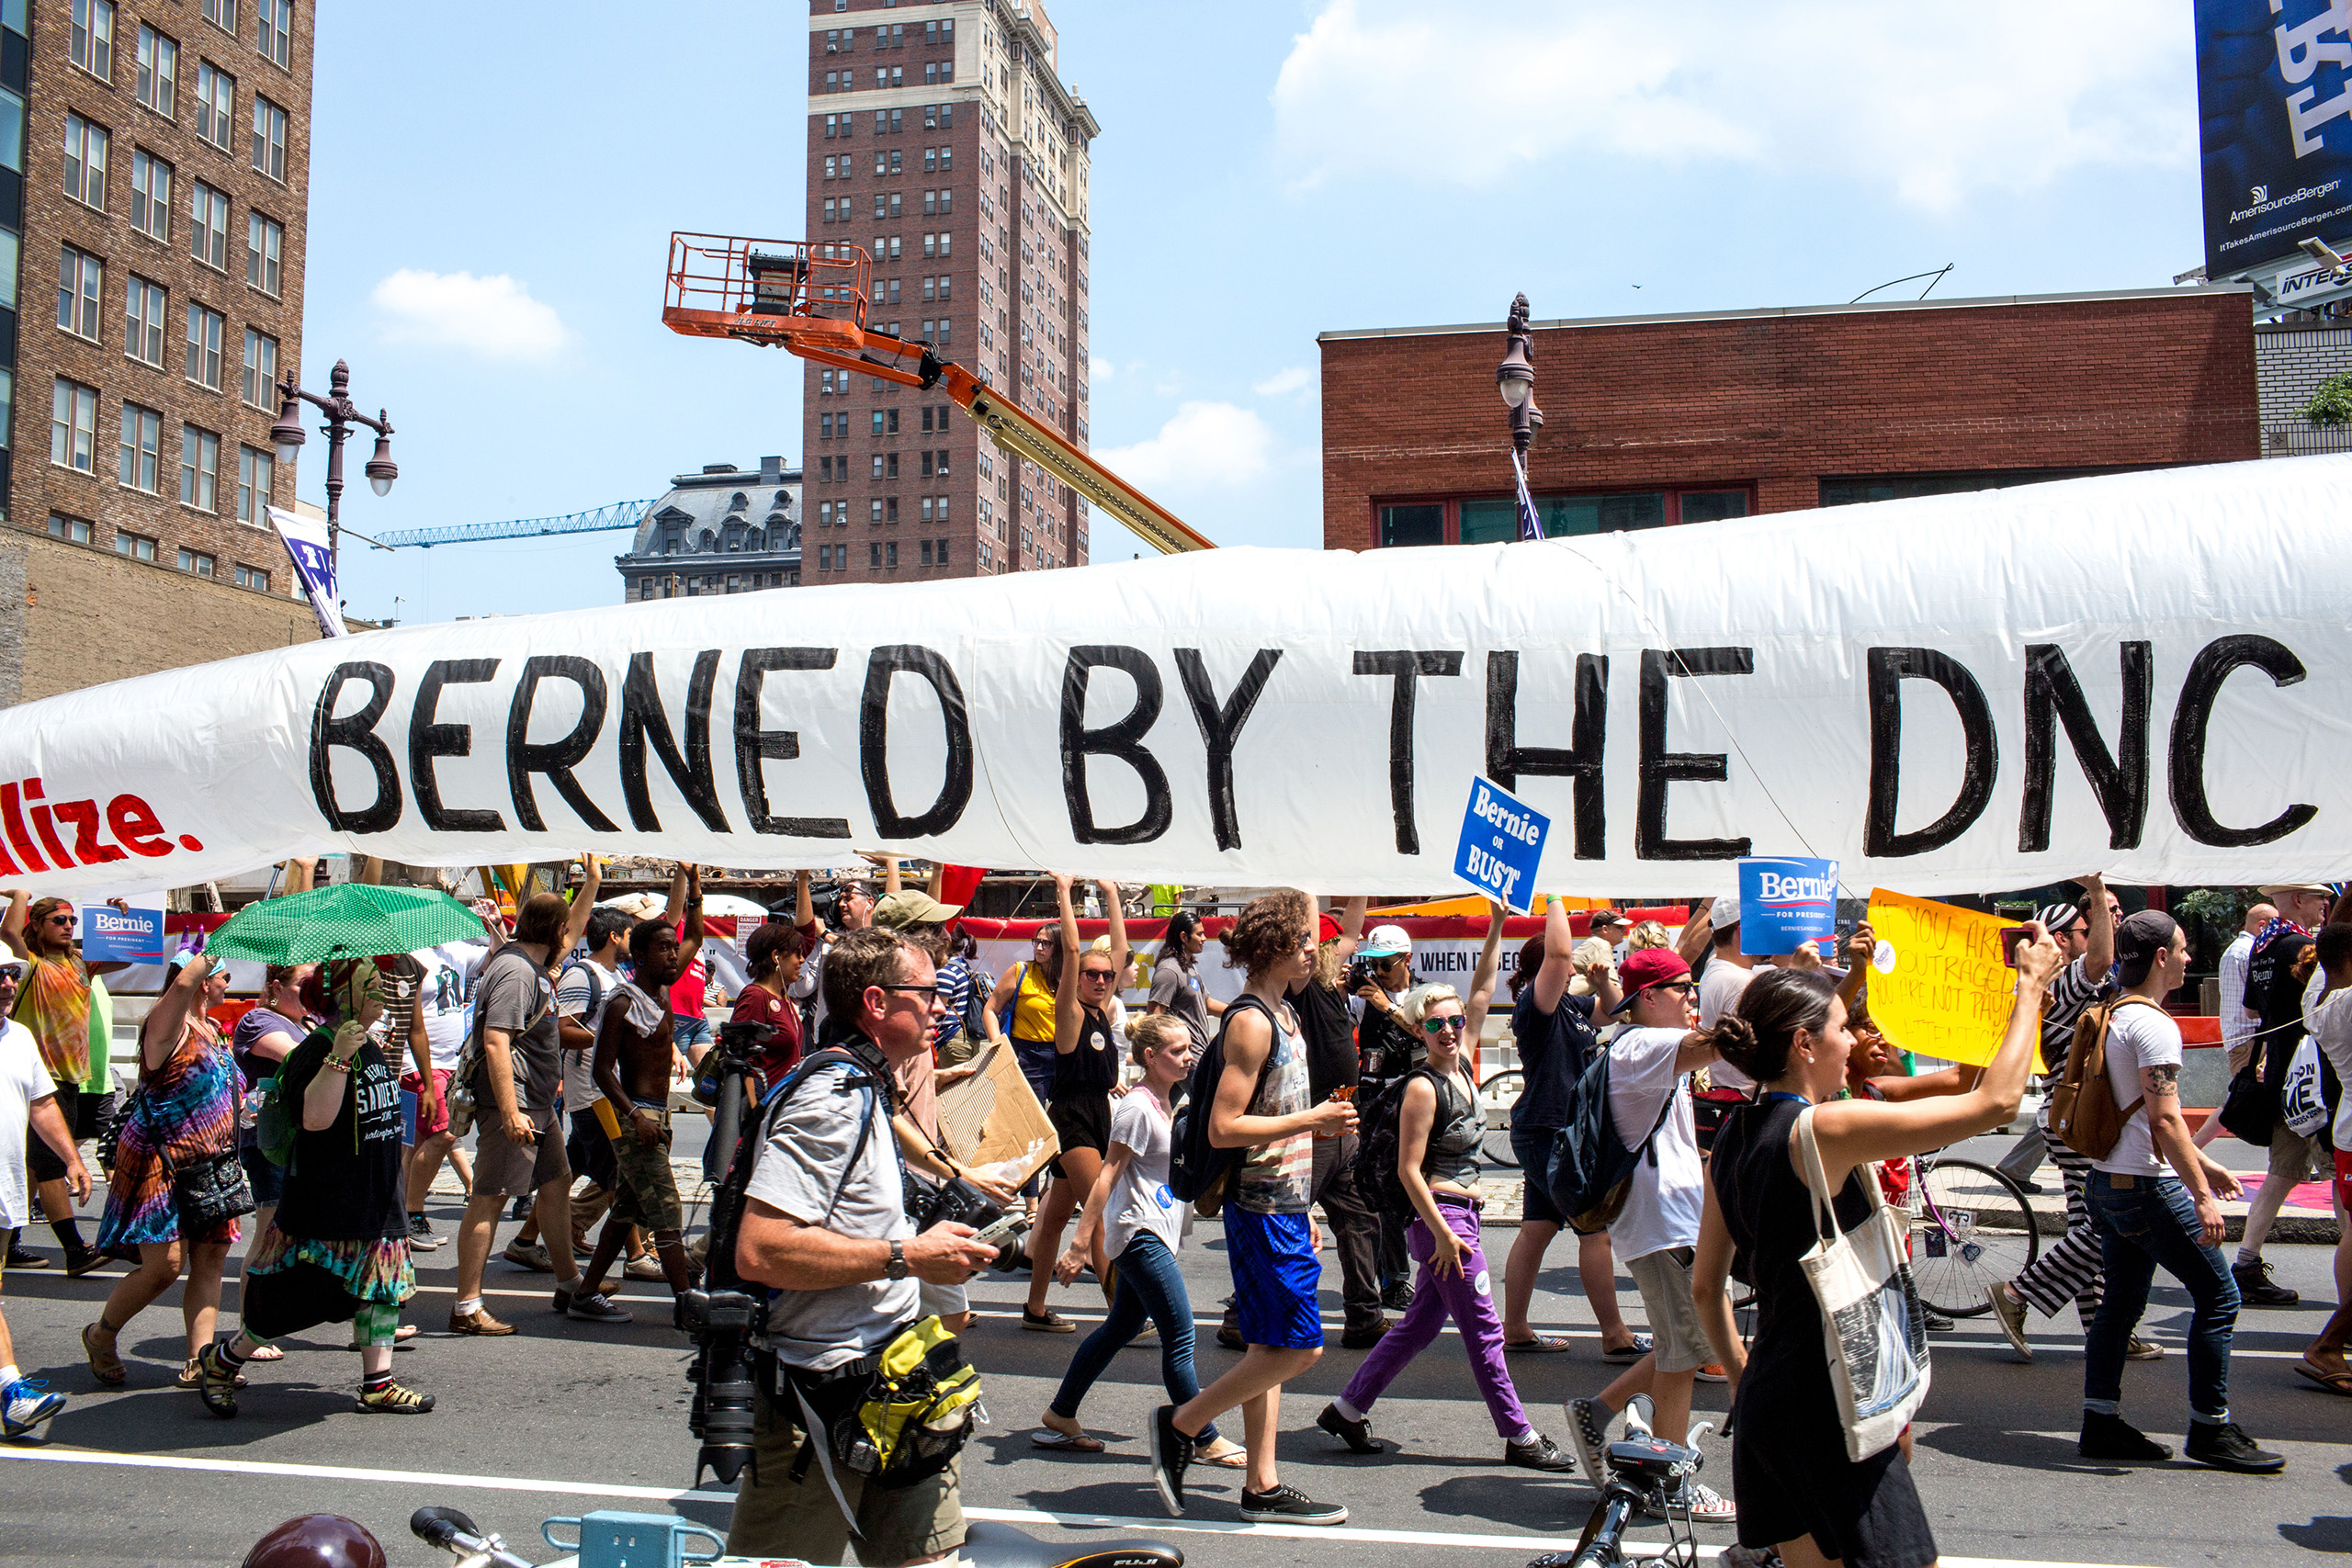 Protesters march from City Hall to the Democratic National Convention at the Wells Fargo Center on July 25, 2016 in Philadelphia, PA.